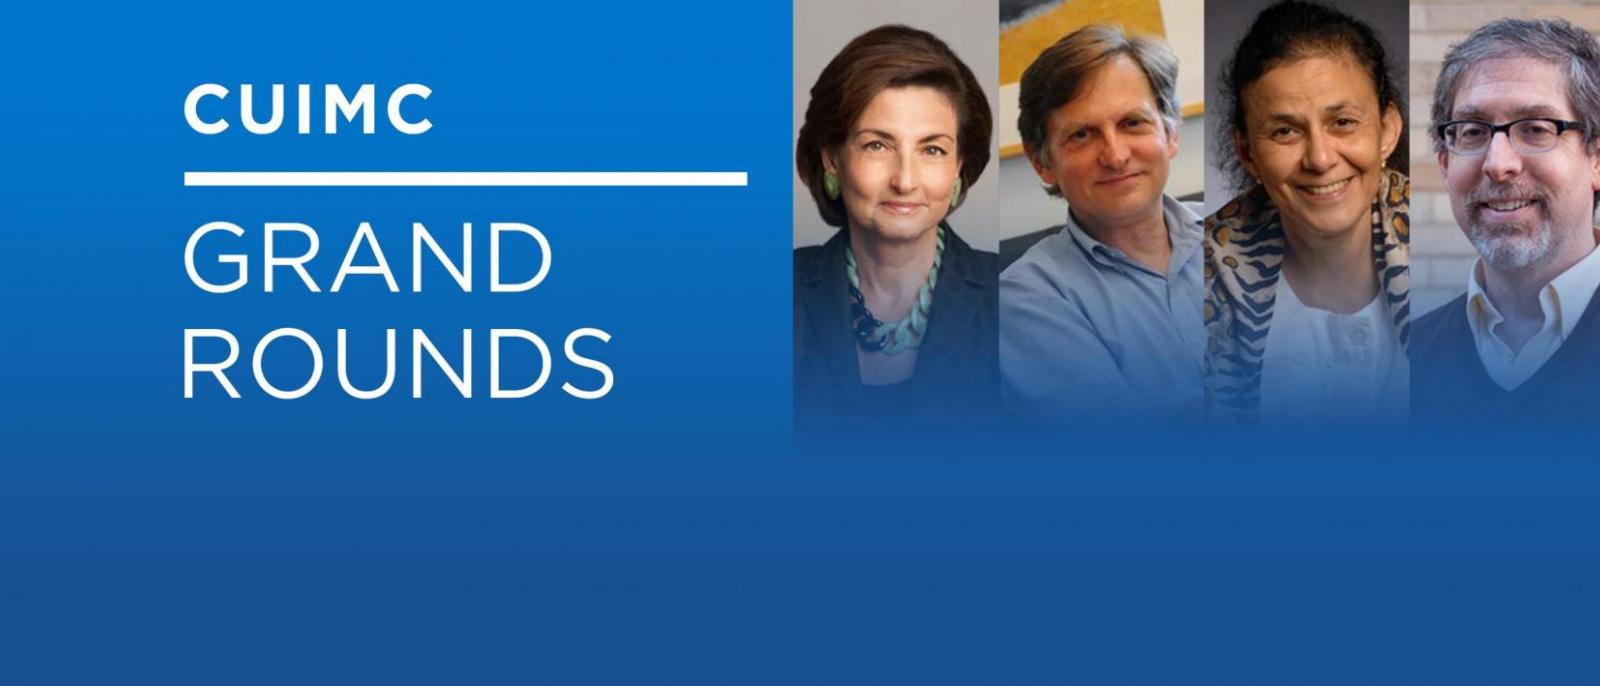 CUIMC grand rounds banner with the headshots of the panelists and moderator of the upcoming rounds